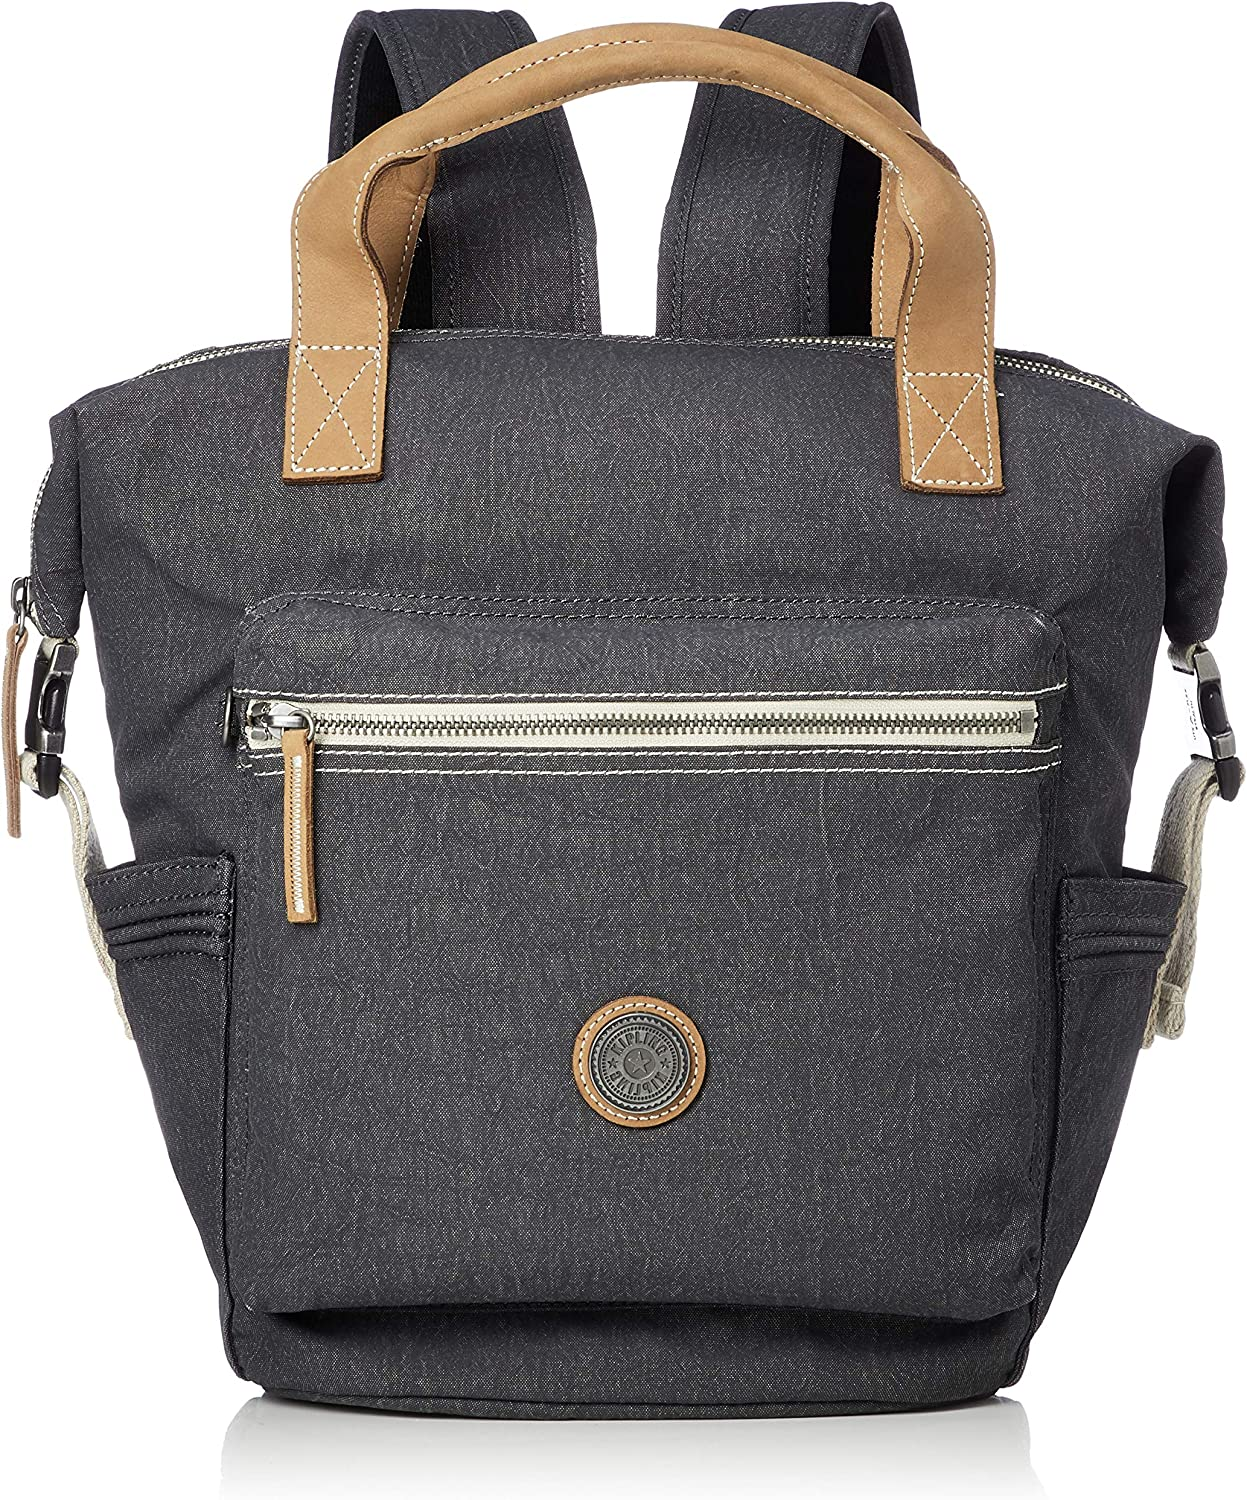 Kipling Edgeland Eyes Wide Open Tsuki S Small Backpack Casual Grey: Amazon.es: Zapatos y complementos